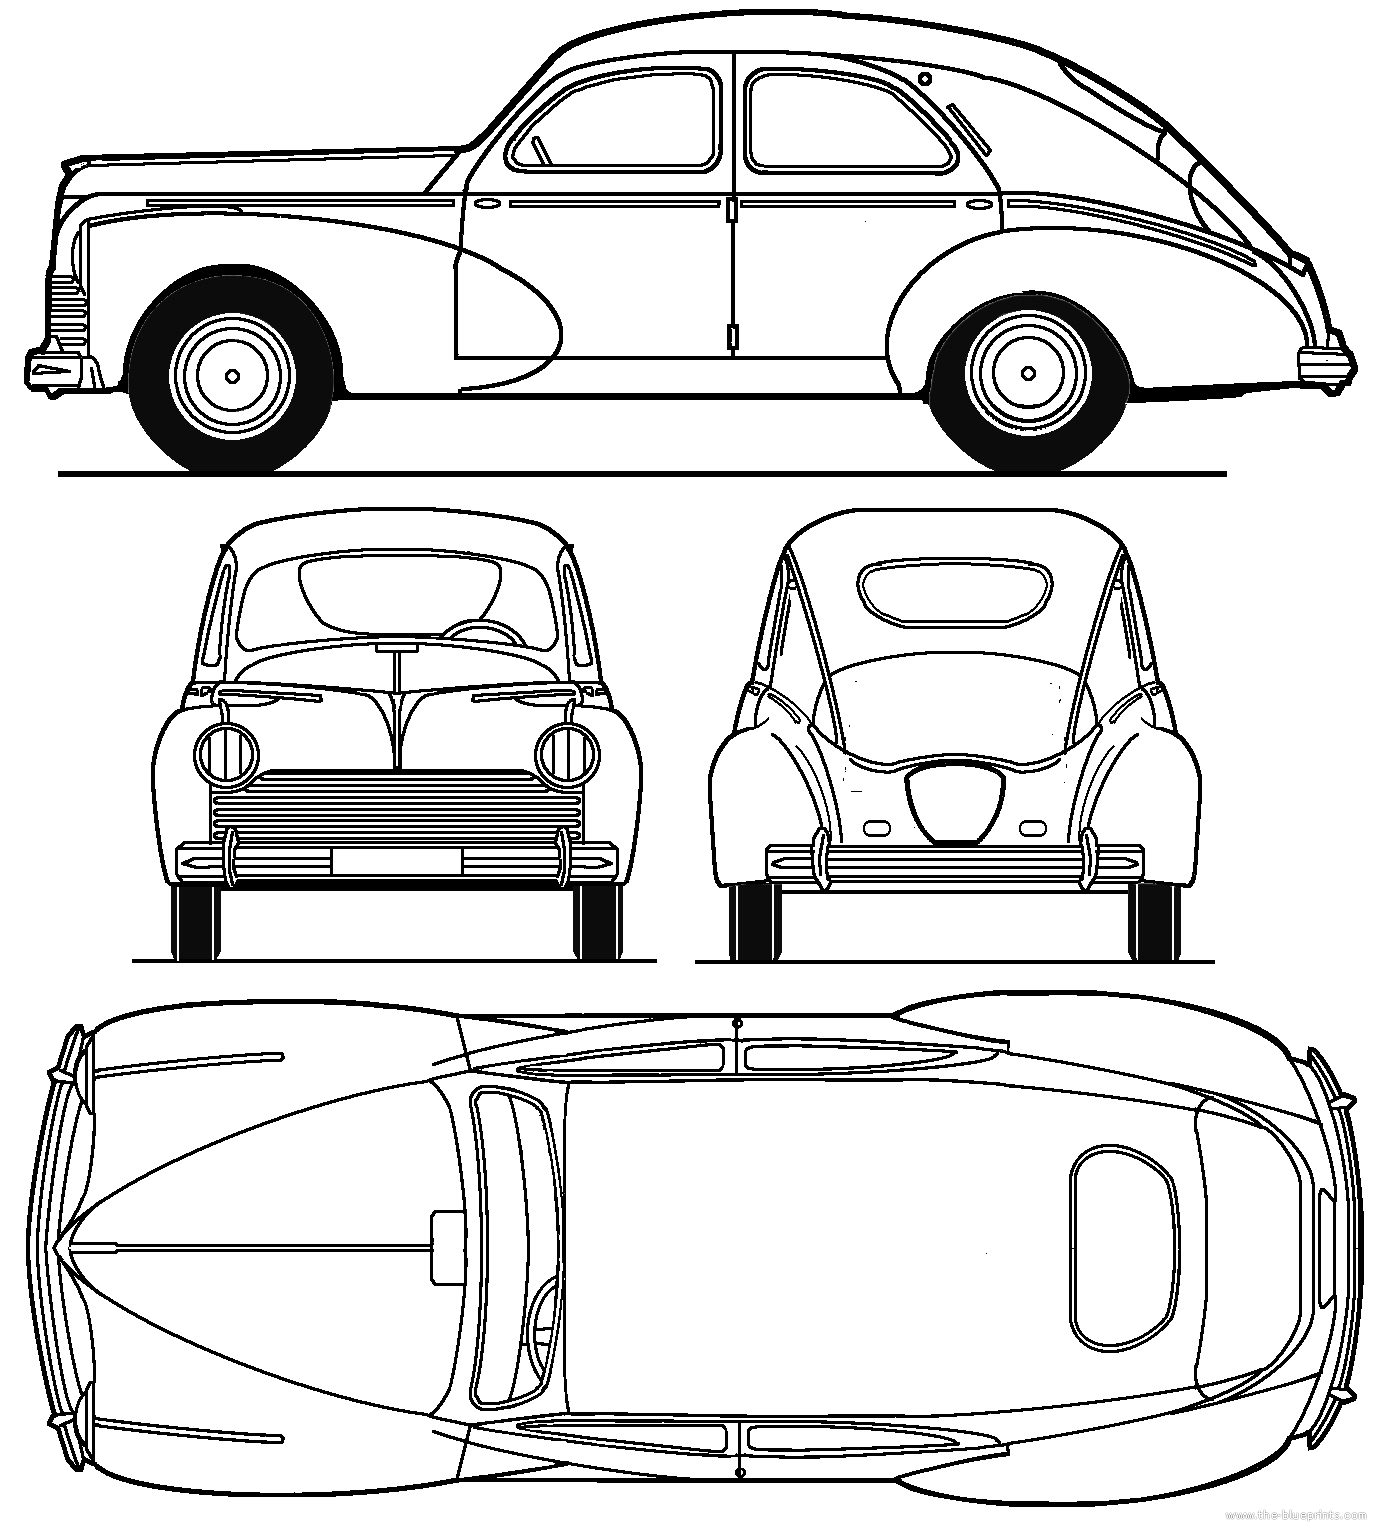 Awesome blueprints for cars gallery everything you need to know blueprints cars peugeot peugeot 203 malvernweather Choice Image